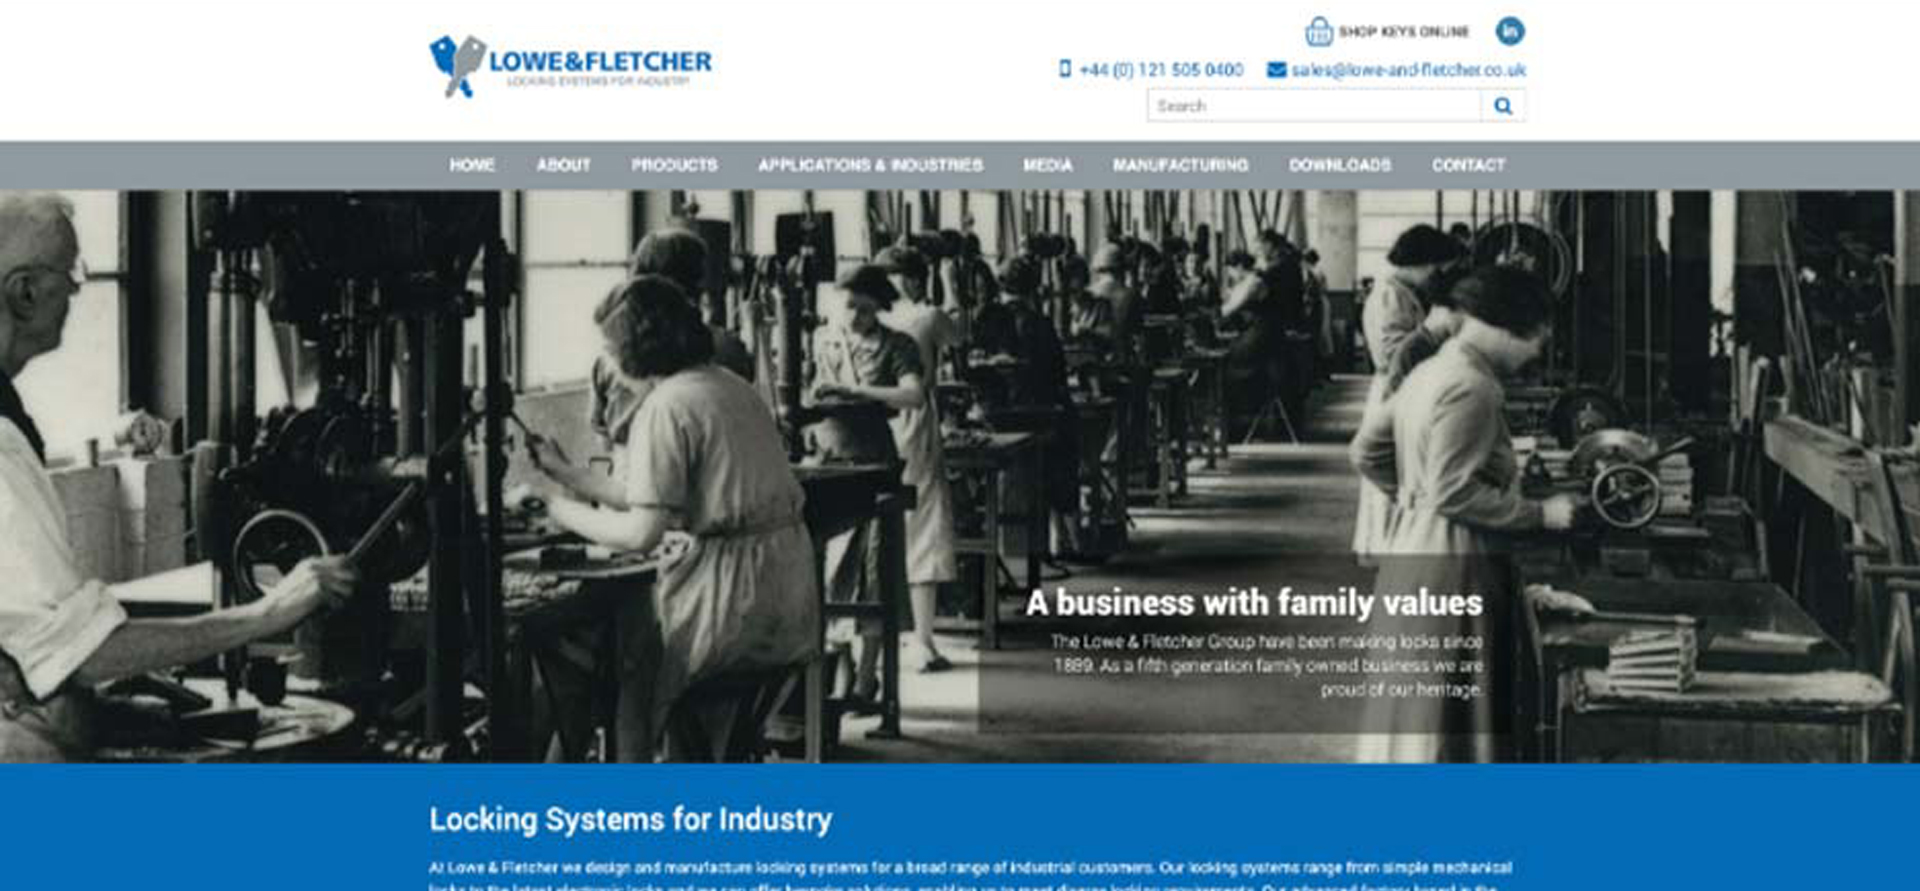 Factory image for website in Burton on Trent